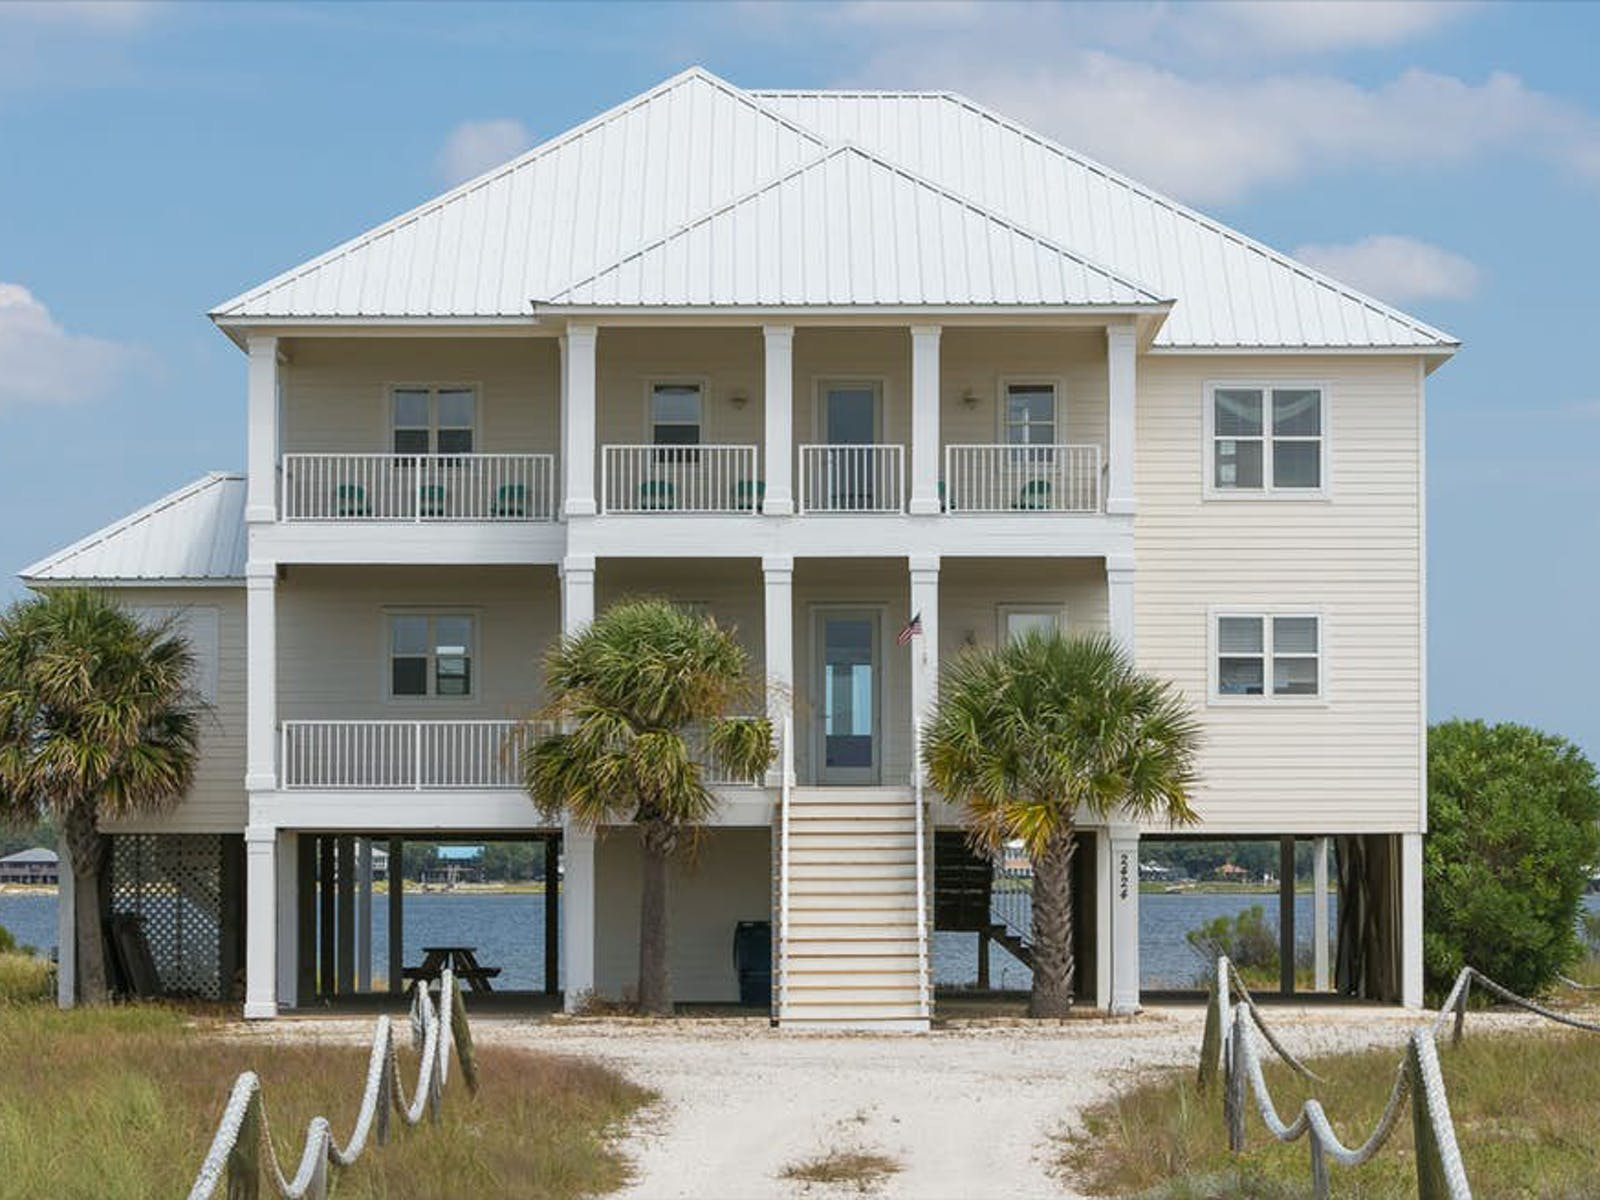 Alabama Wedding-Friendly beach house rental